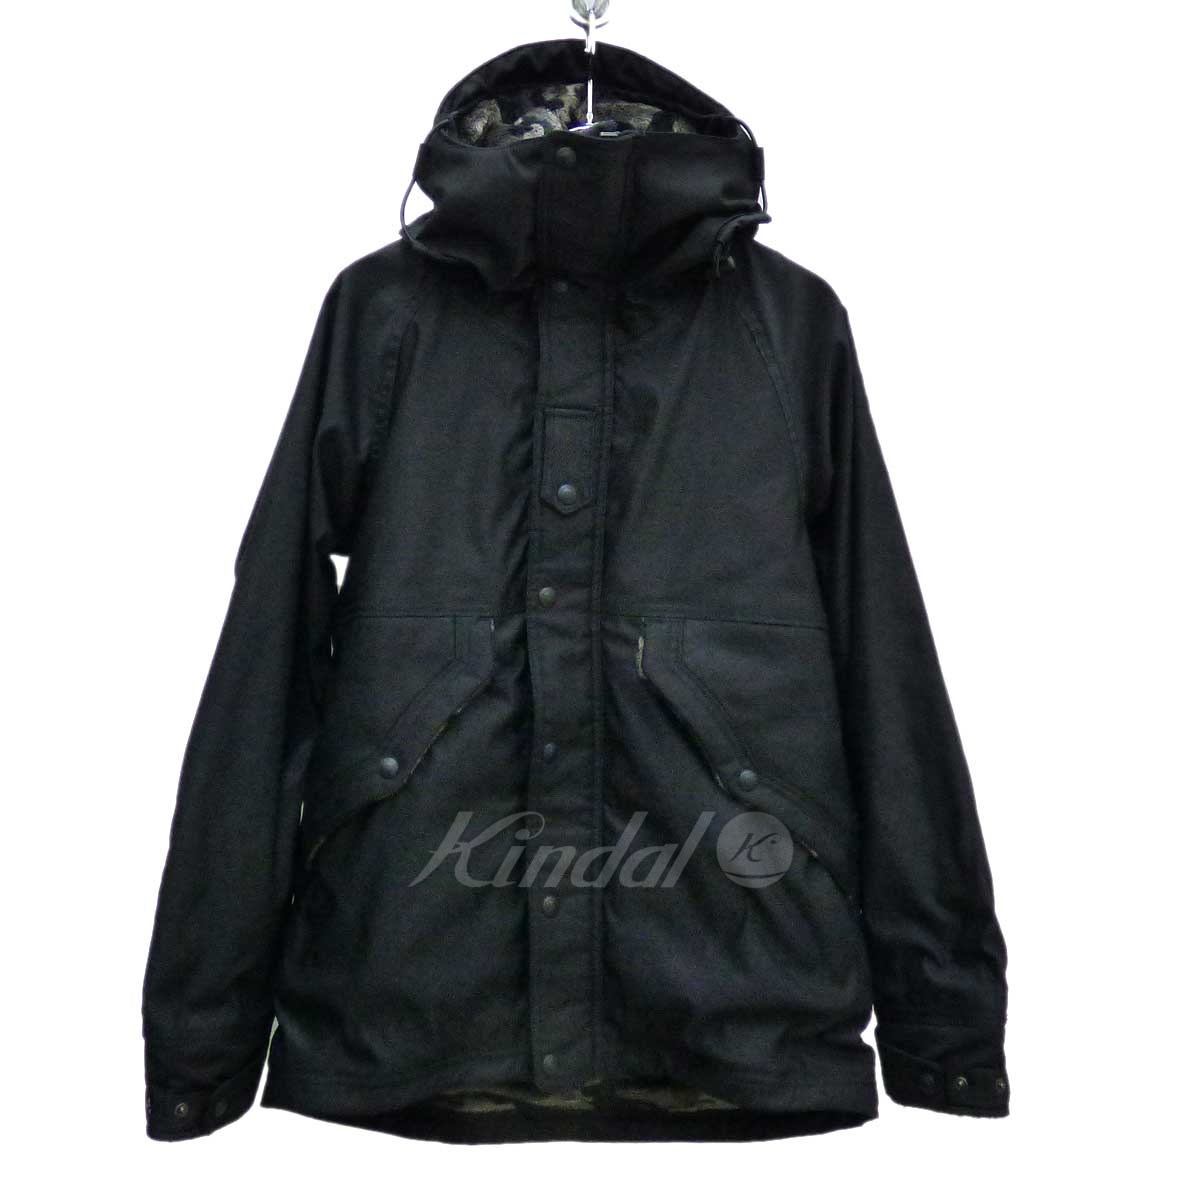 【中古】narifuri Back boa field jacket 2015A/W 【送料無料】 【051090】 【KIND1550】